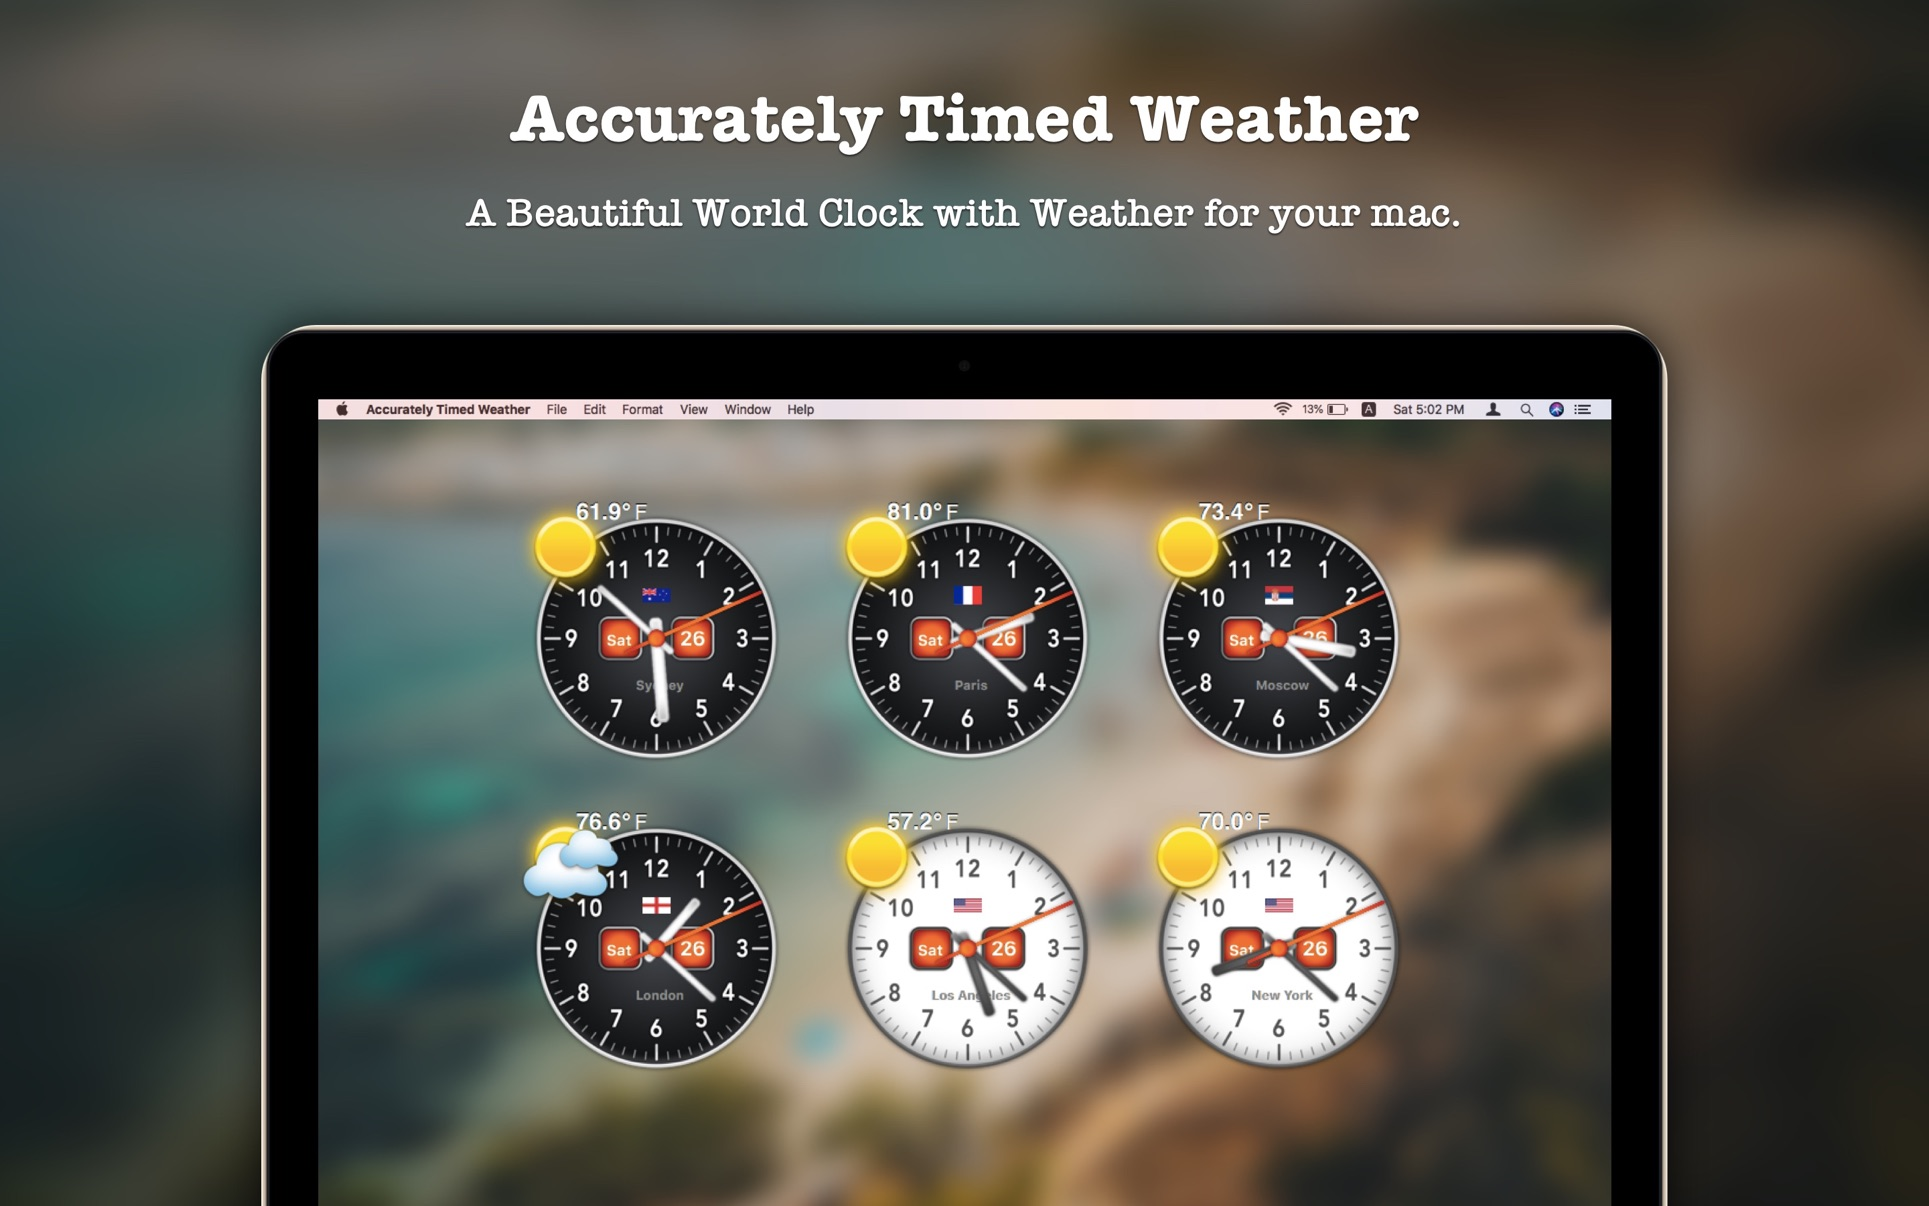 Accurately Timed Weather